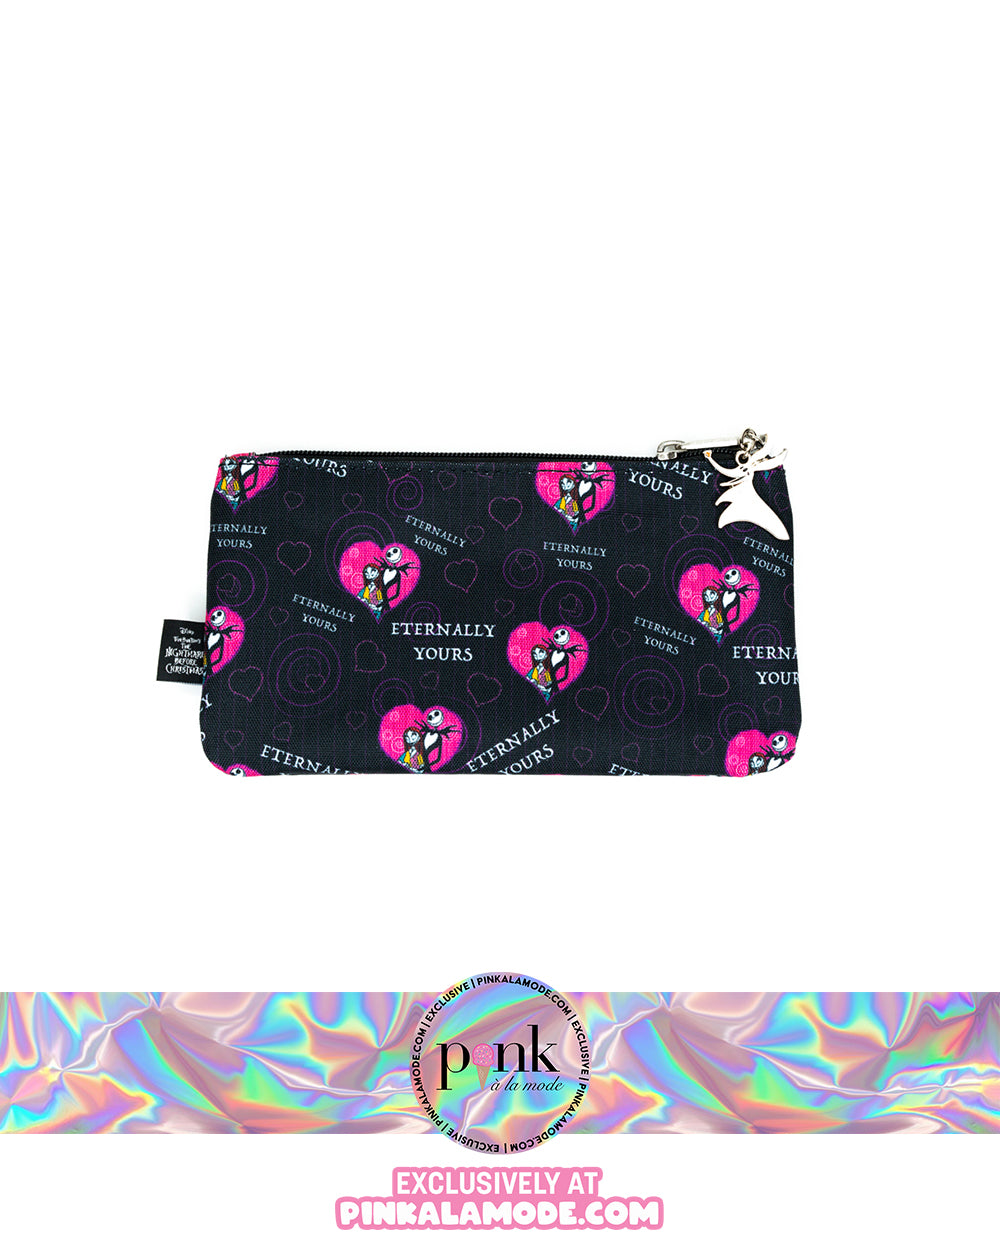 Nightmare Before Christmas Coin Purse - Pink a la Mode Exclusive *PREORDER* - The Pink a la Mode - Loungefly - The Pink a la Mode